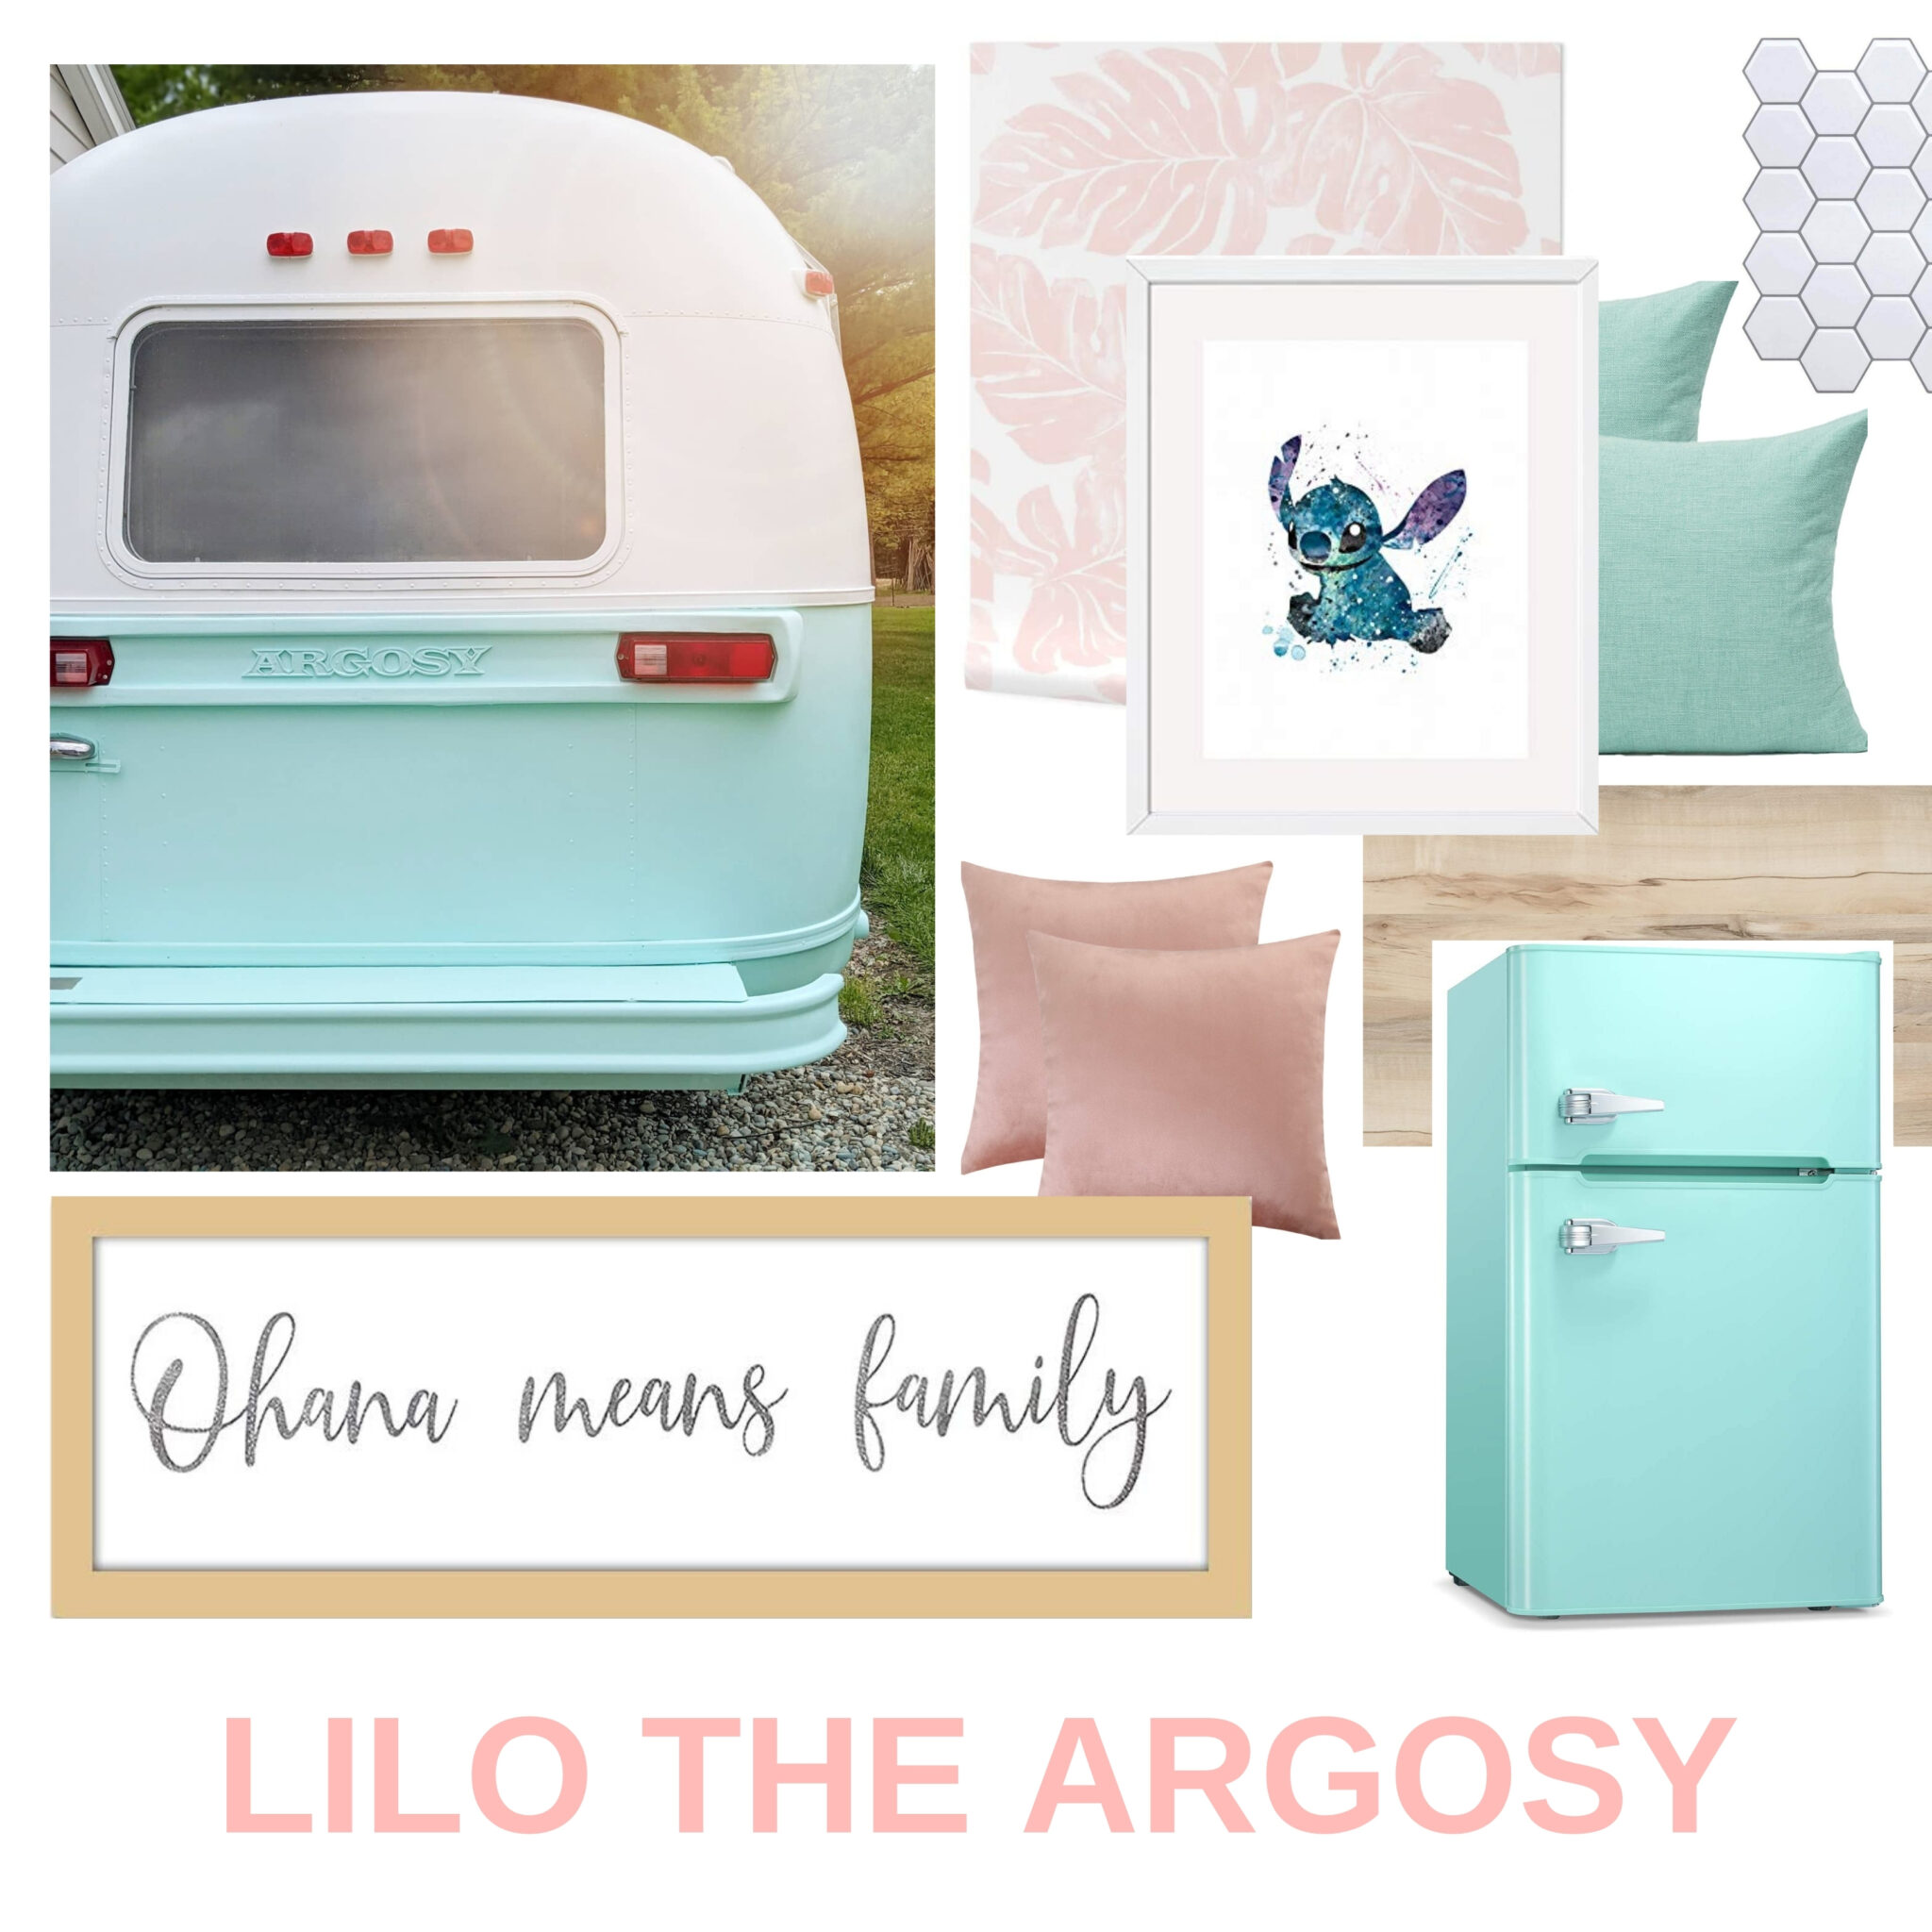 Our 1974 Airstream Argosy Travel Trailer Renovation Project All Things with Purpose Sarah Lemp